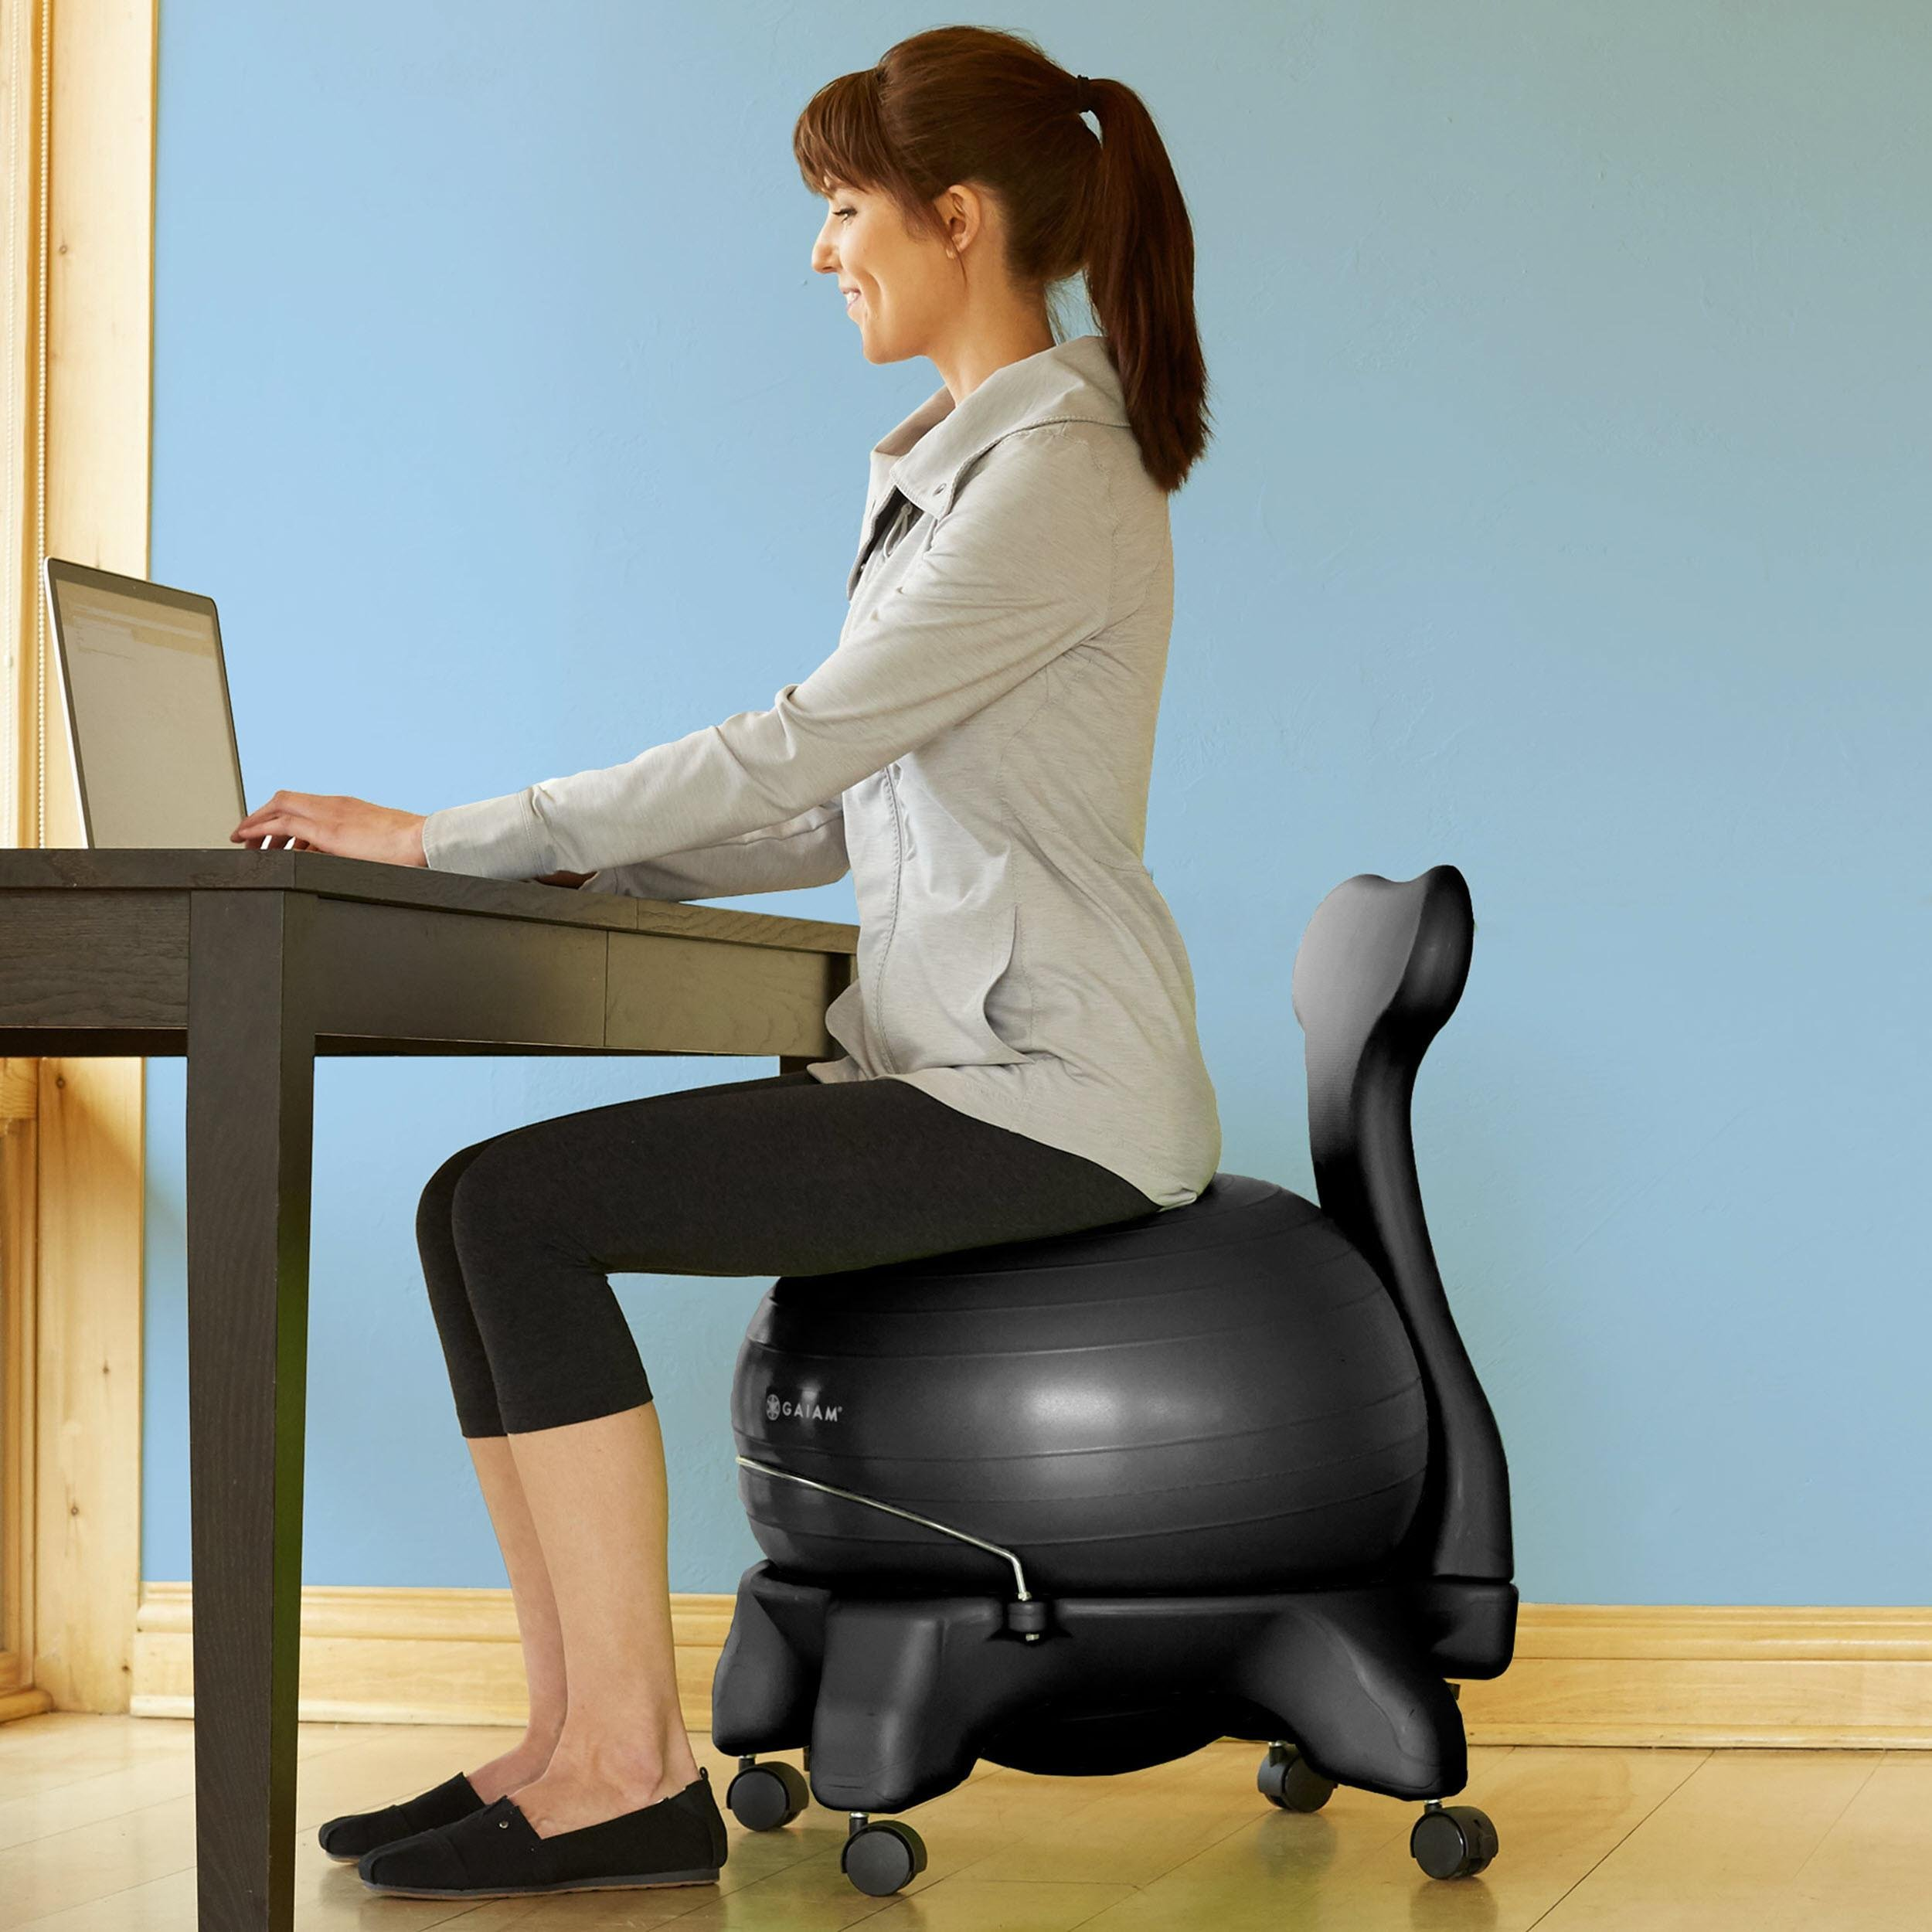 Yoga Ball Desk Chair Amazon Gaiam Balance Ball Chair Black Exercise